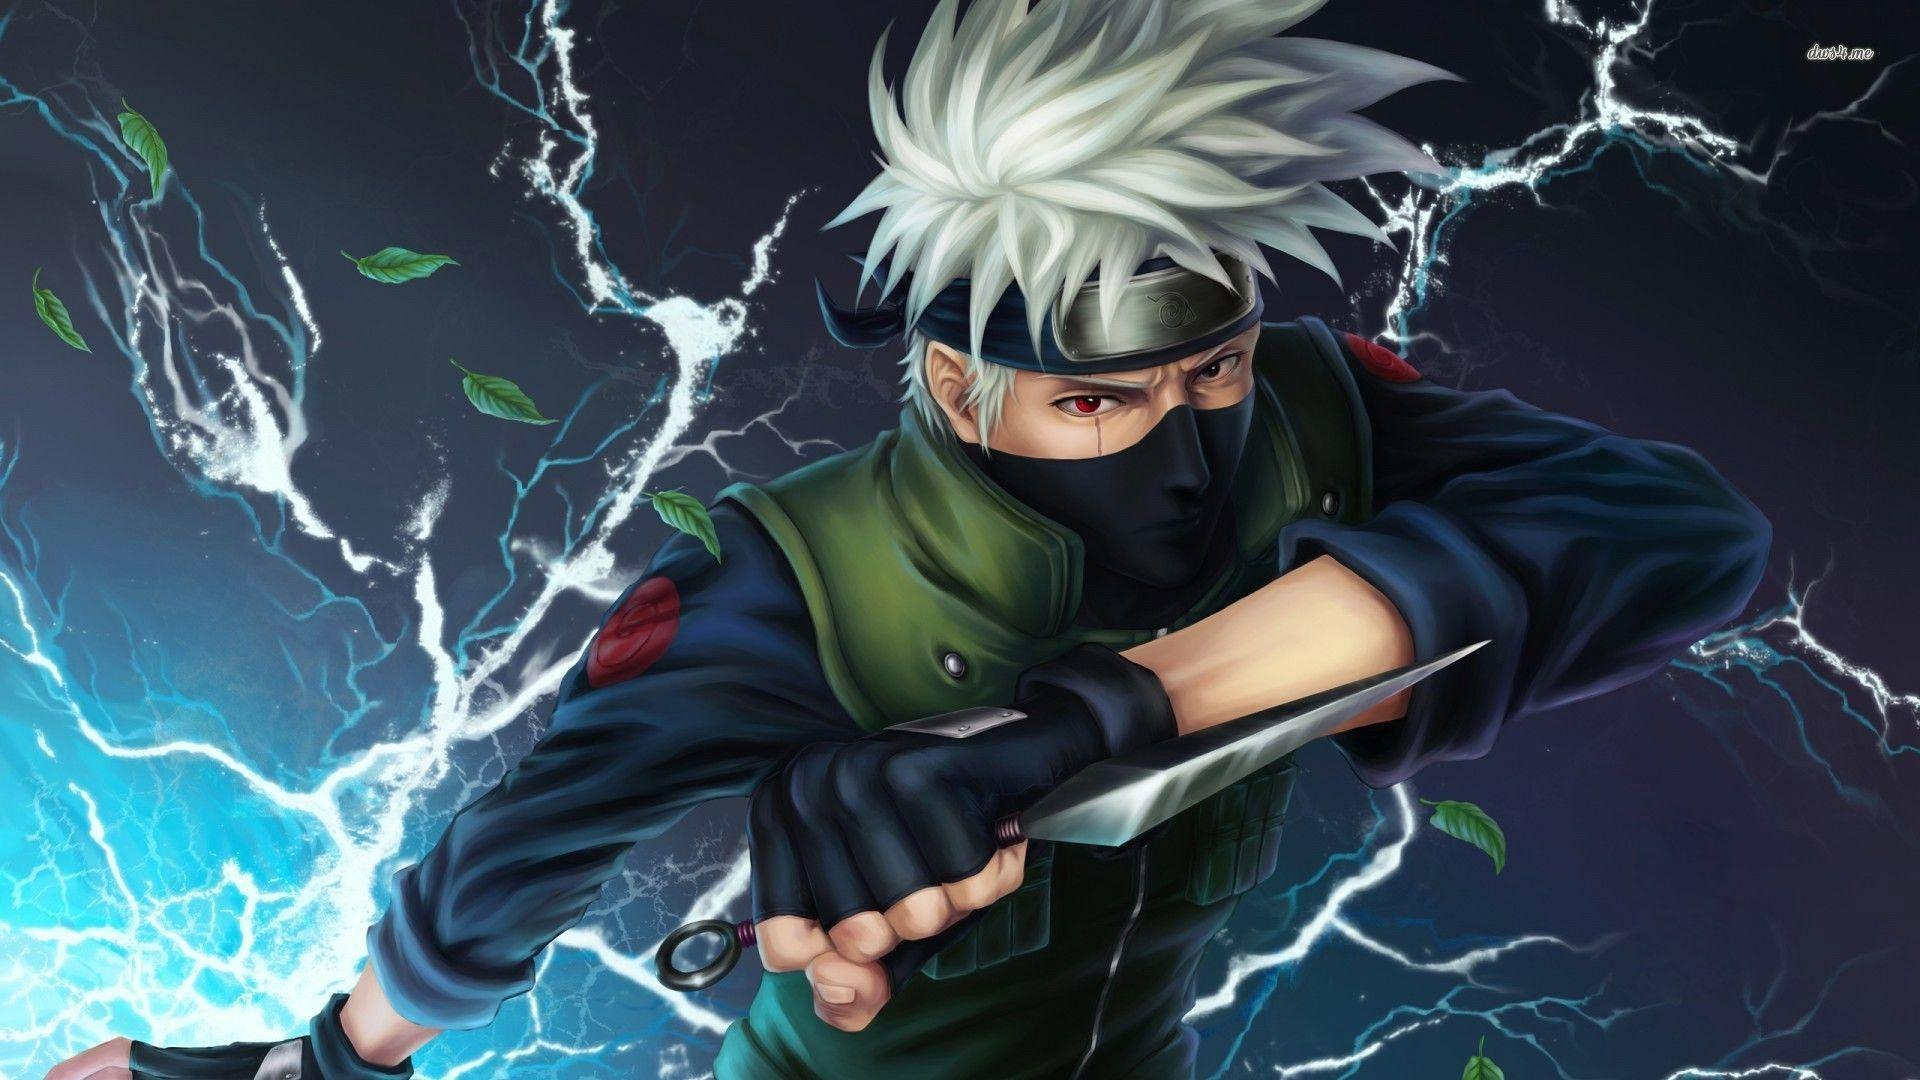 naruto kakashi wallpapers wallpaper cave. Black Bedroom Furniture Sets. Home Design Ideas